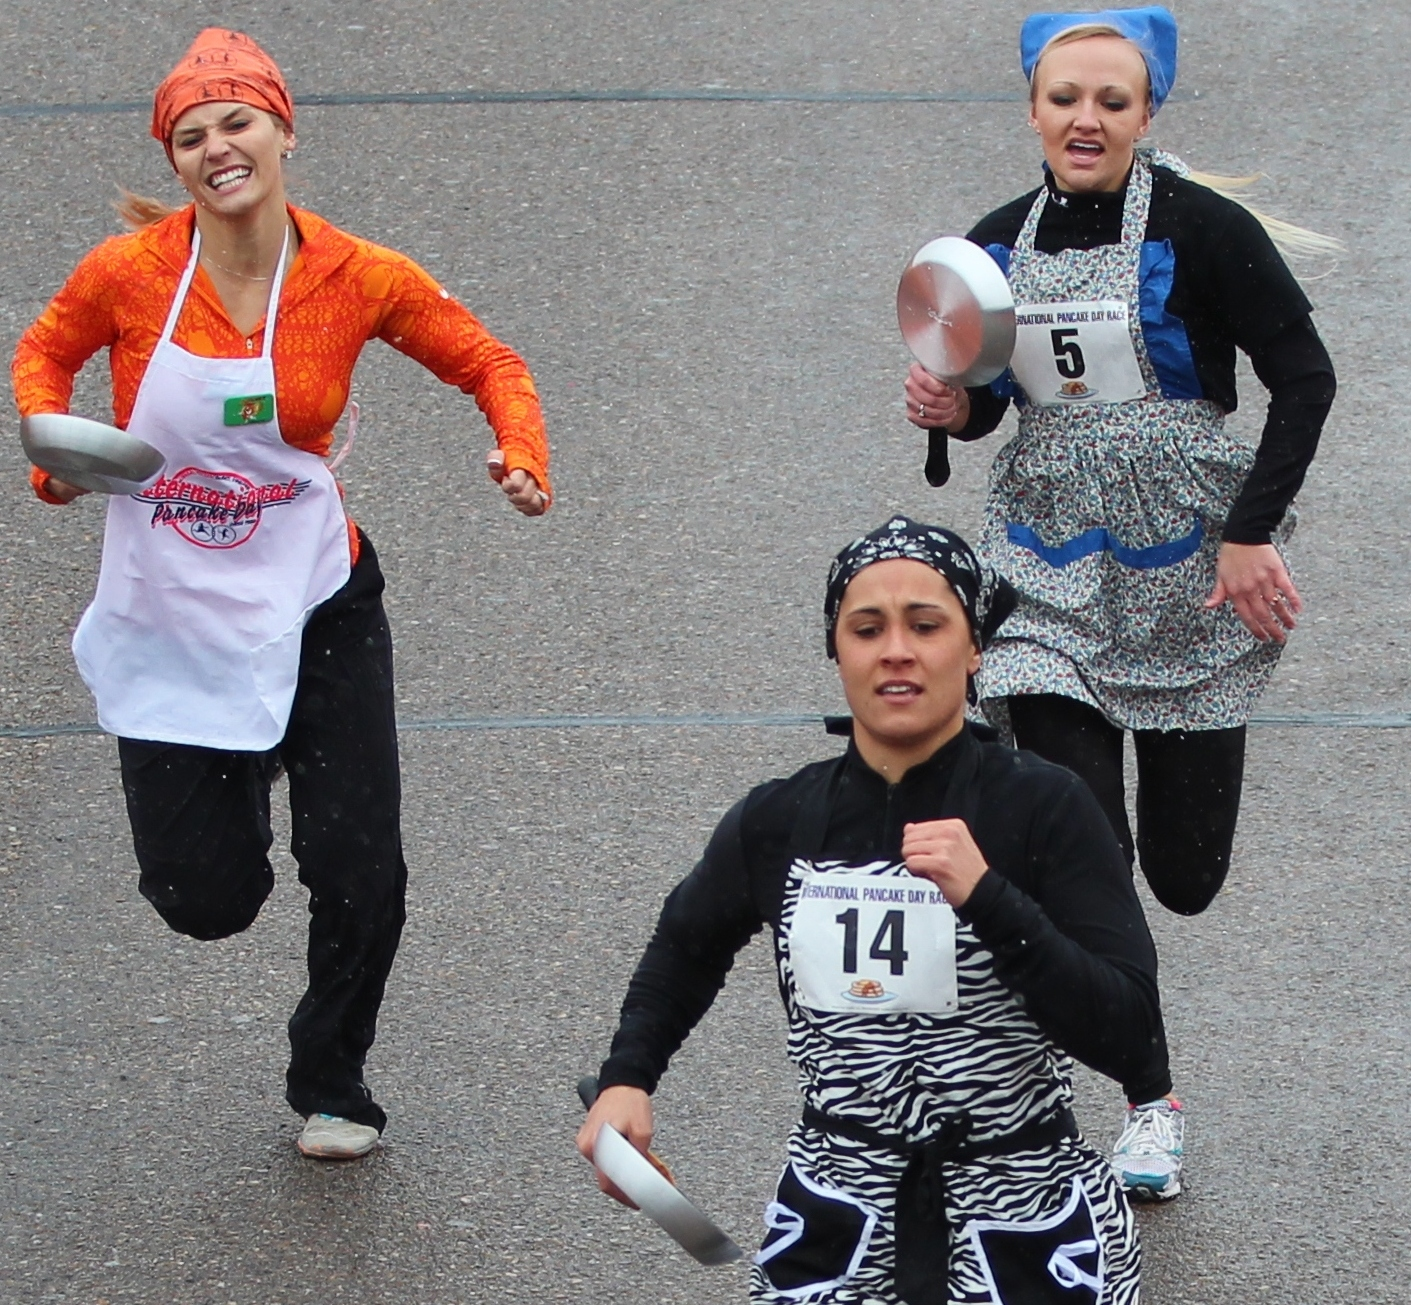 Pancake Day Race Entry Update as of Feb. 14